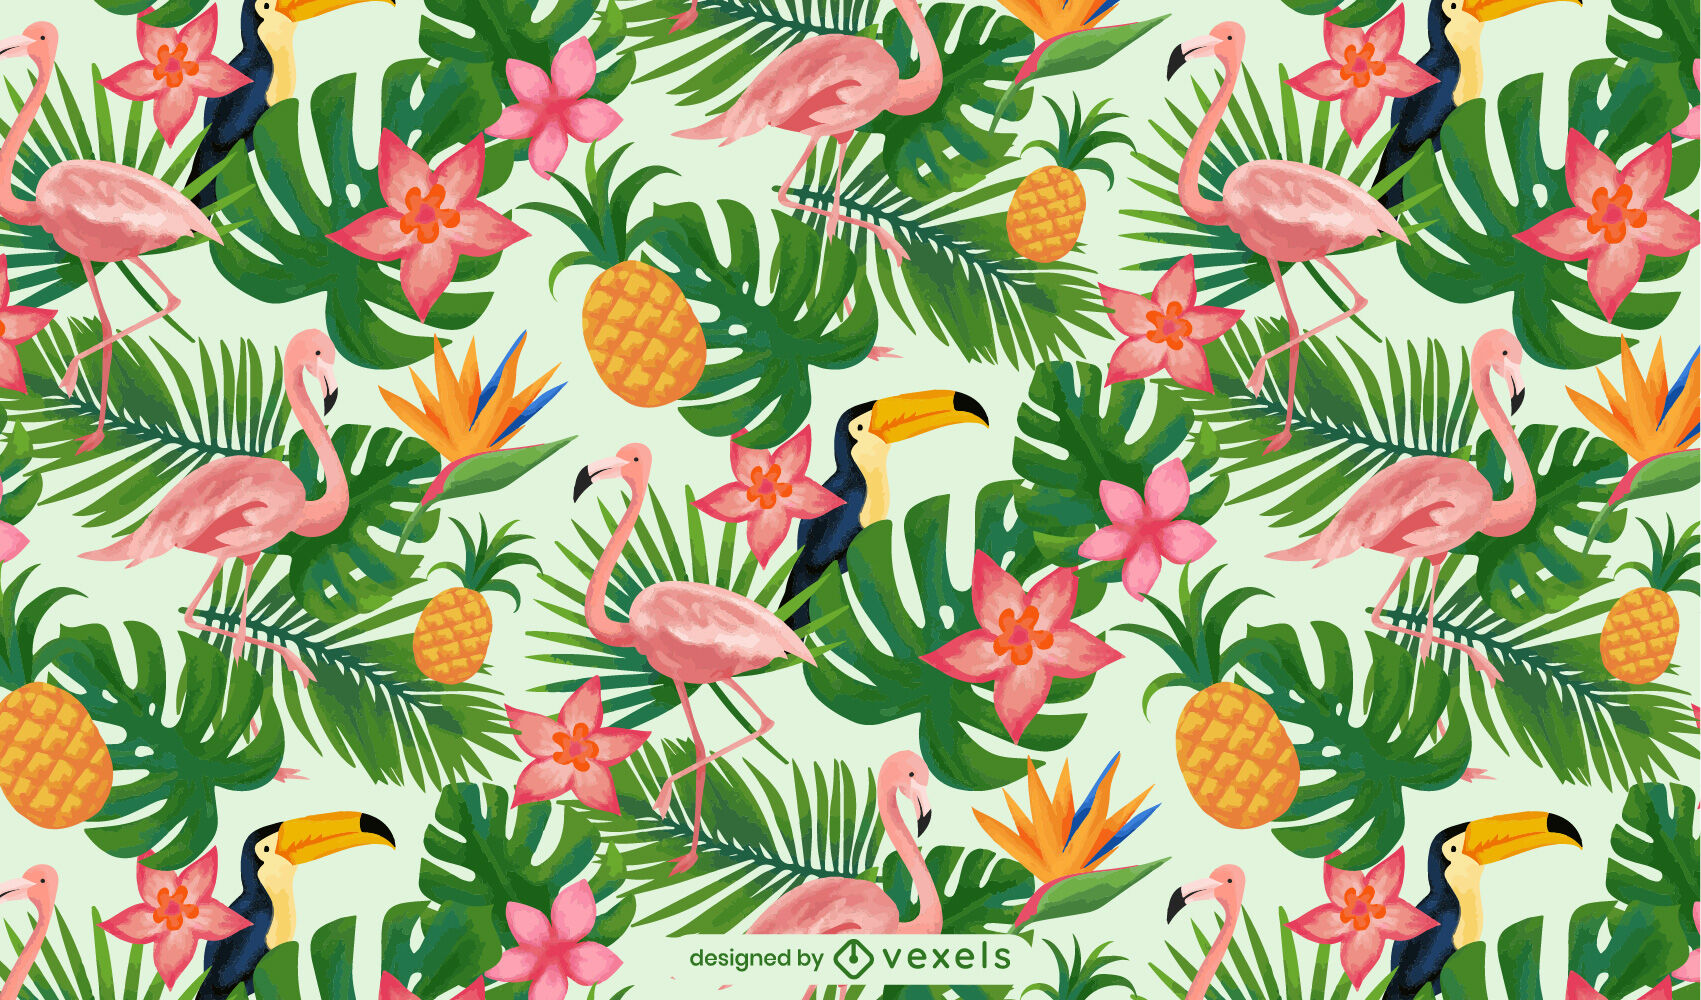 Palms and birds tropical watercolor pattern